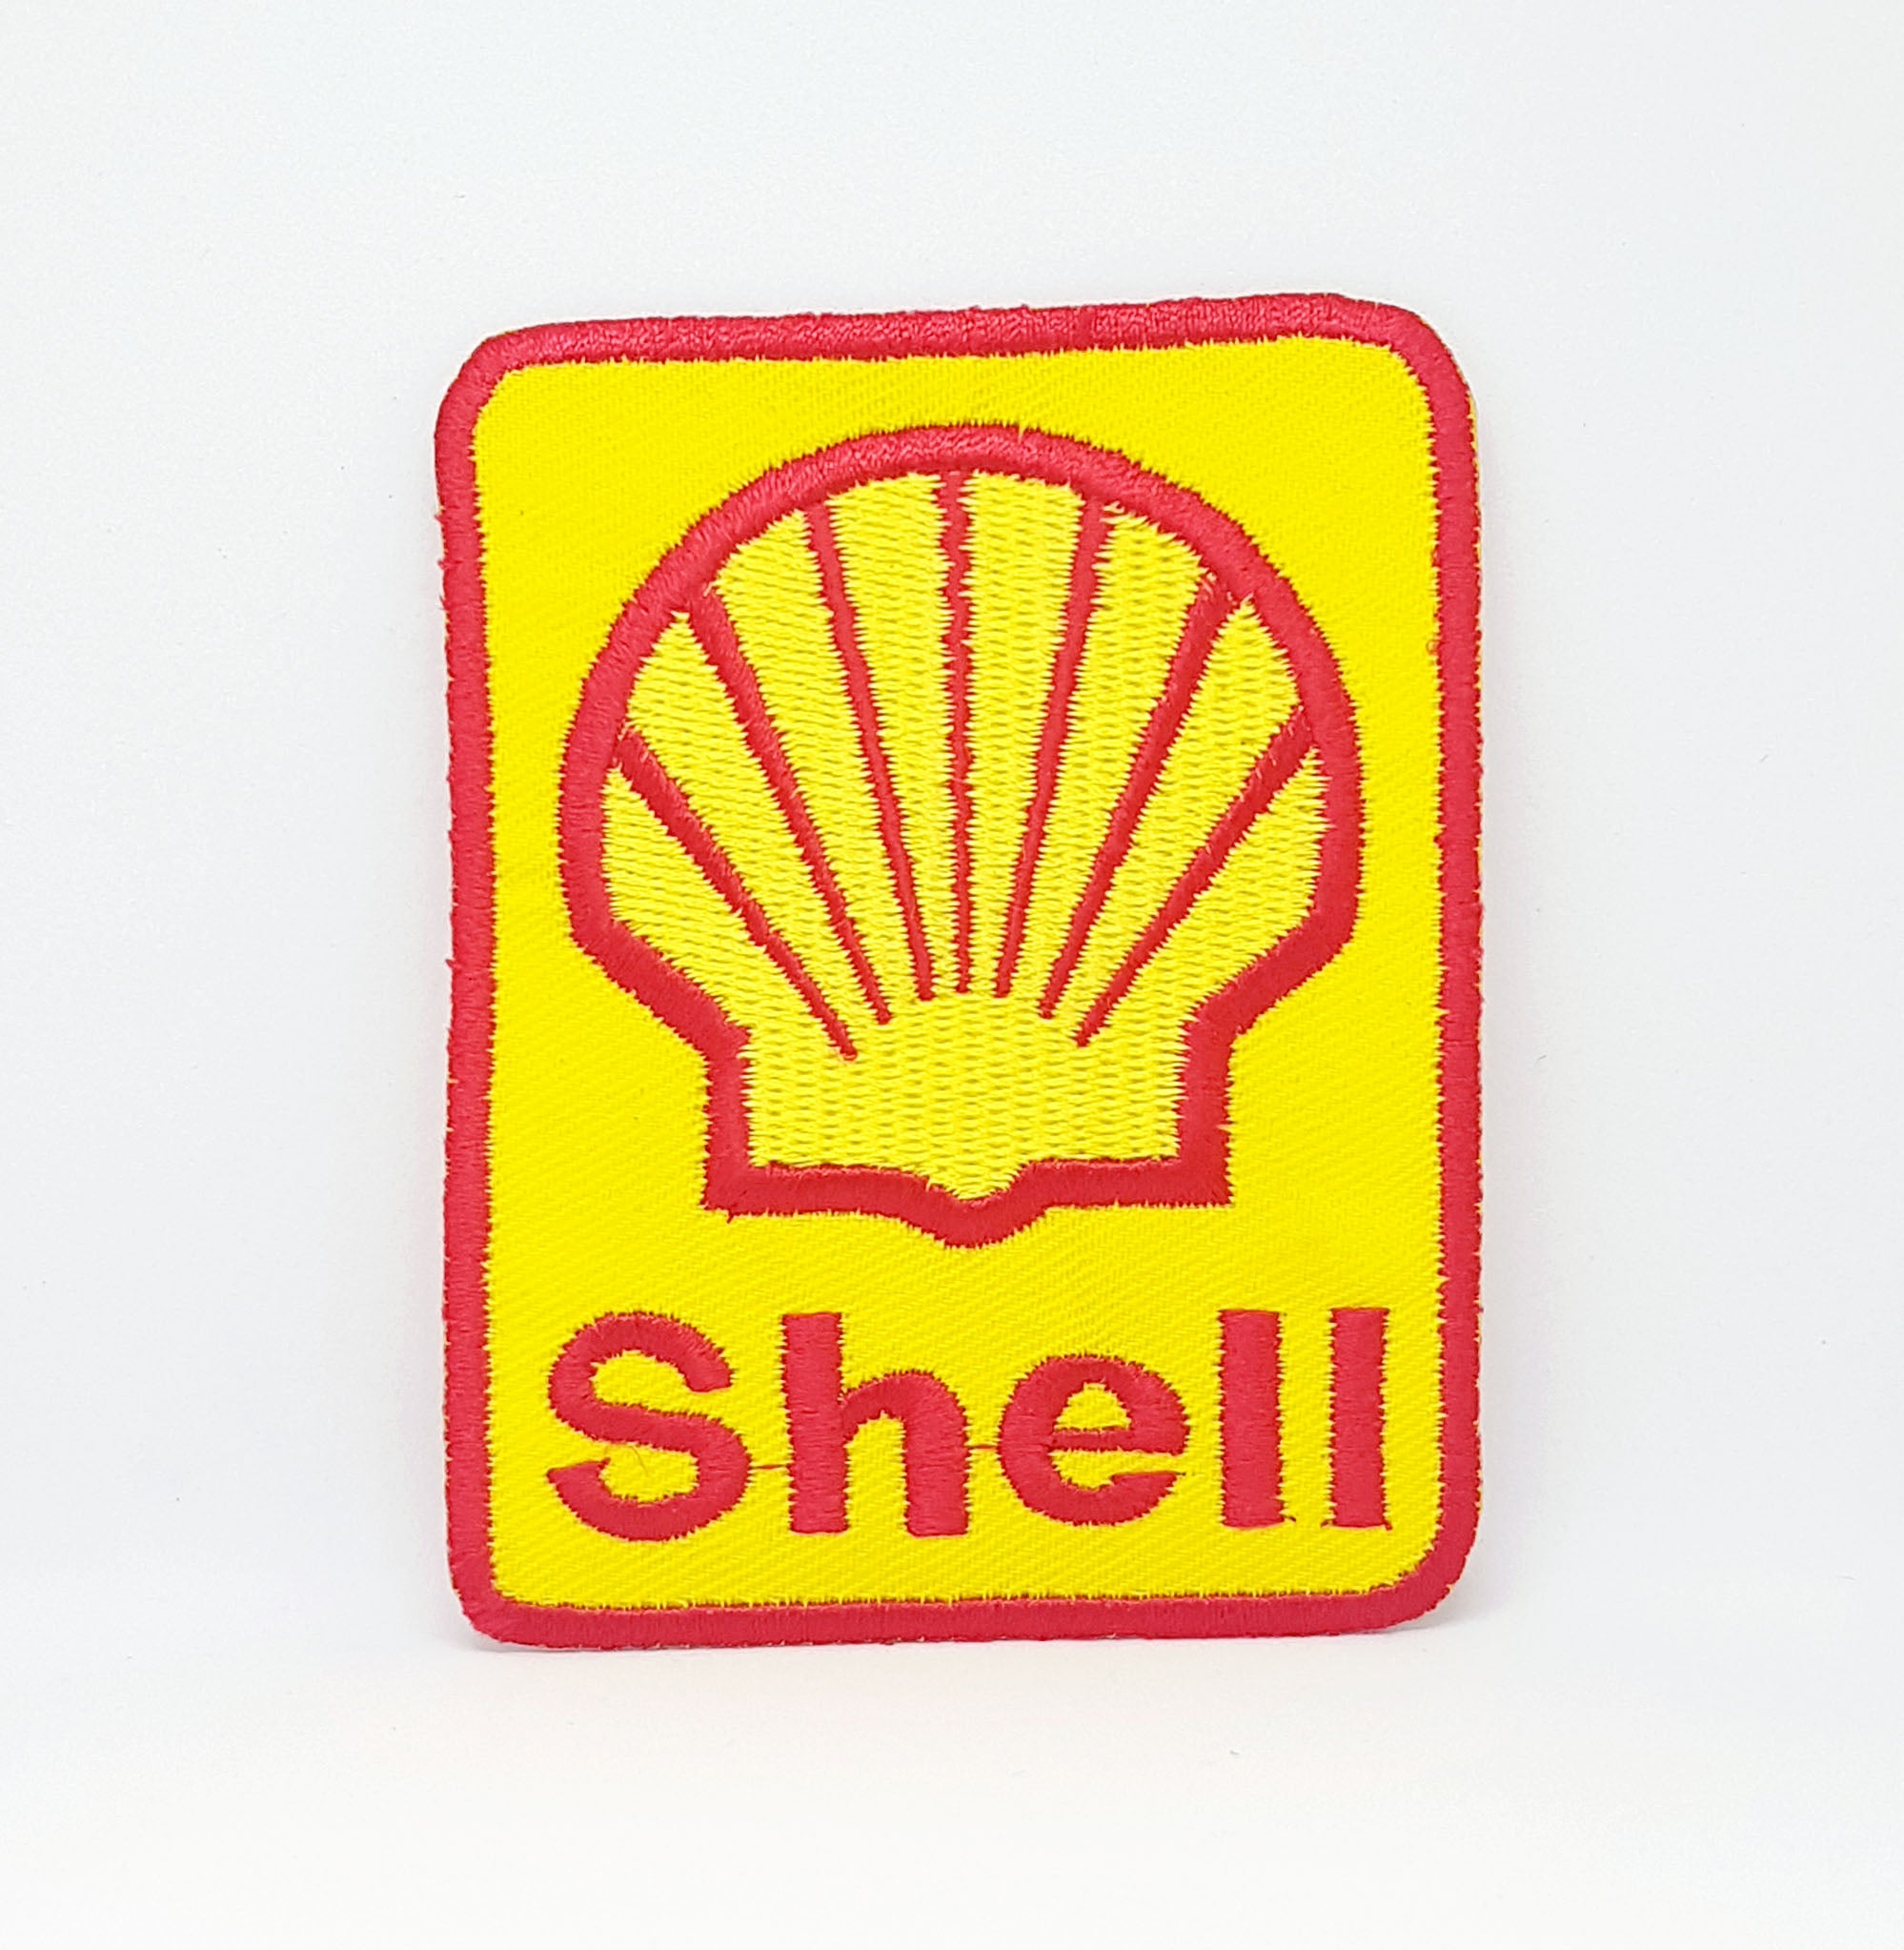 Shell Petrolium Petrol oil Iron Sew on Embroidered Patch